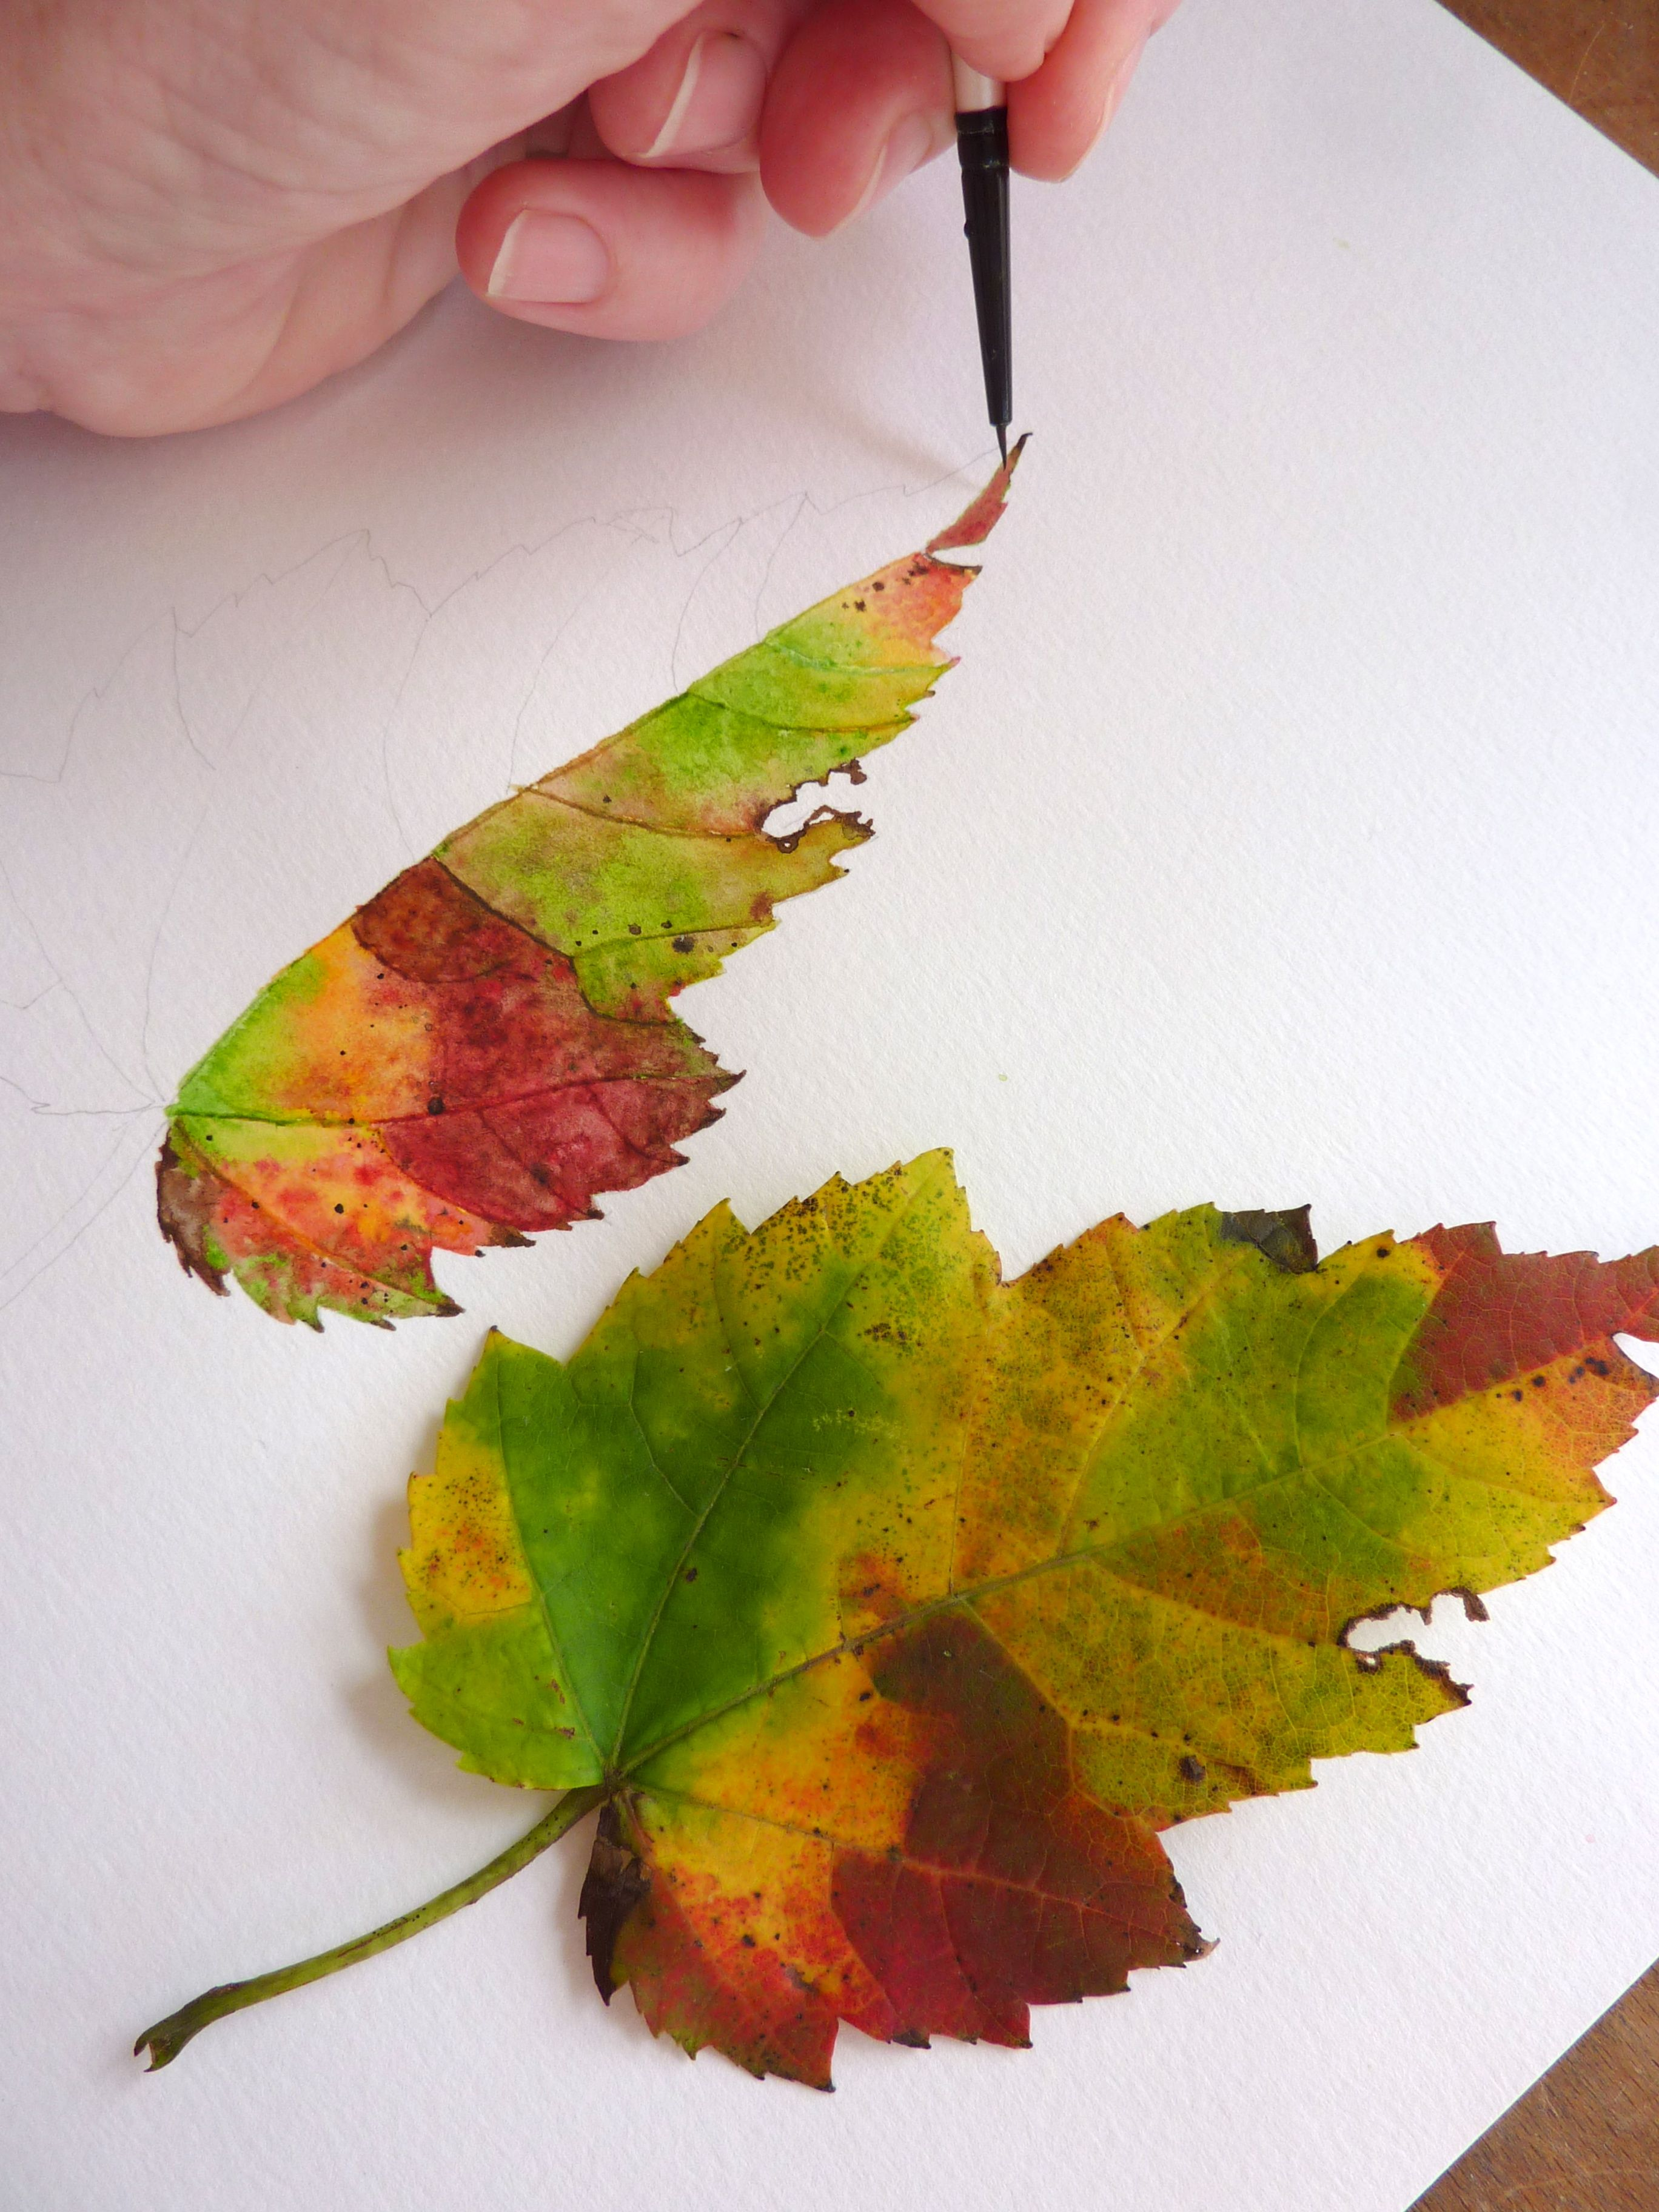 How To Paint Leaves Free Watercolor Art Lesson Site Offers